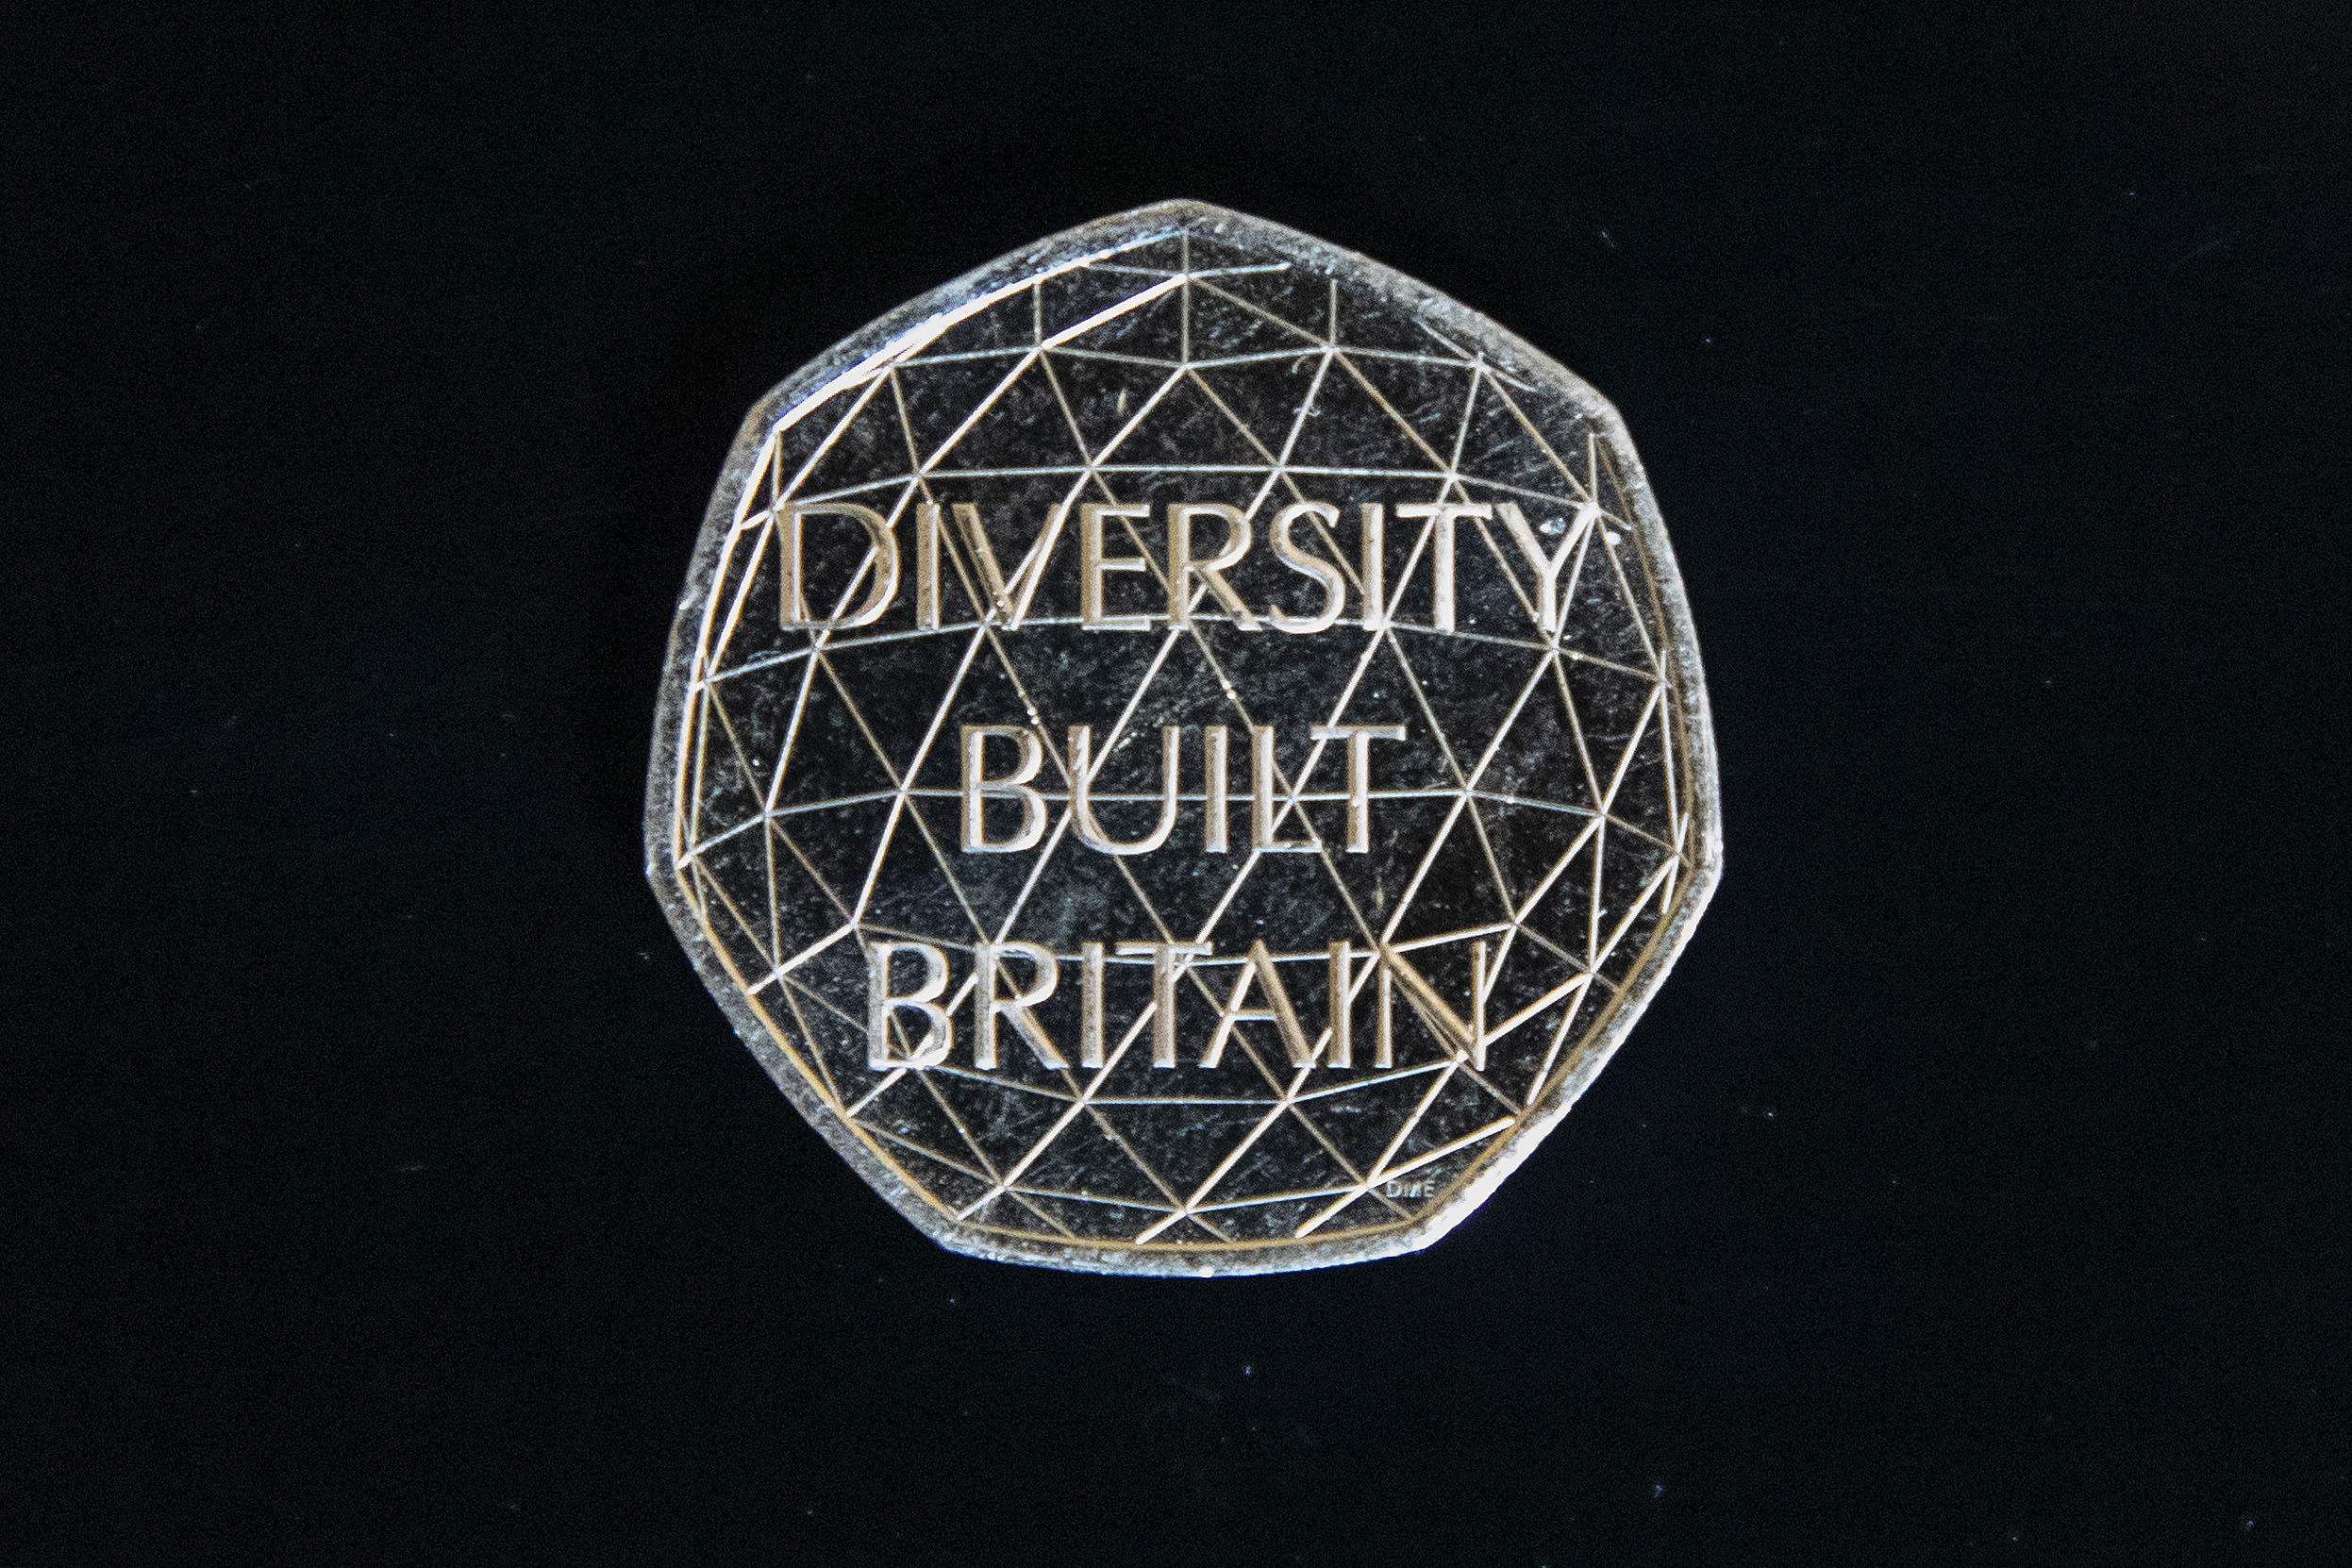 The new 'Diversity built Britain' coin will go into circulation on Monday